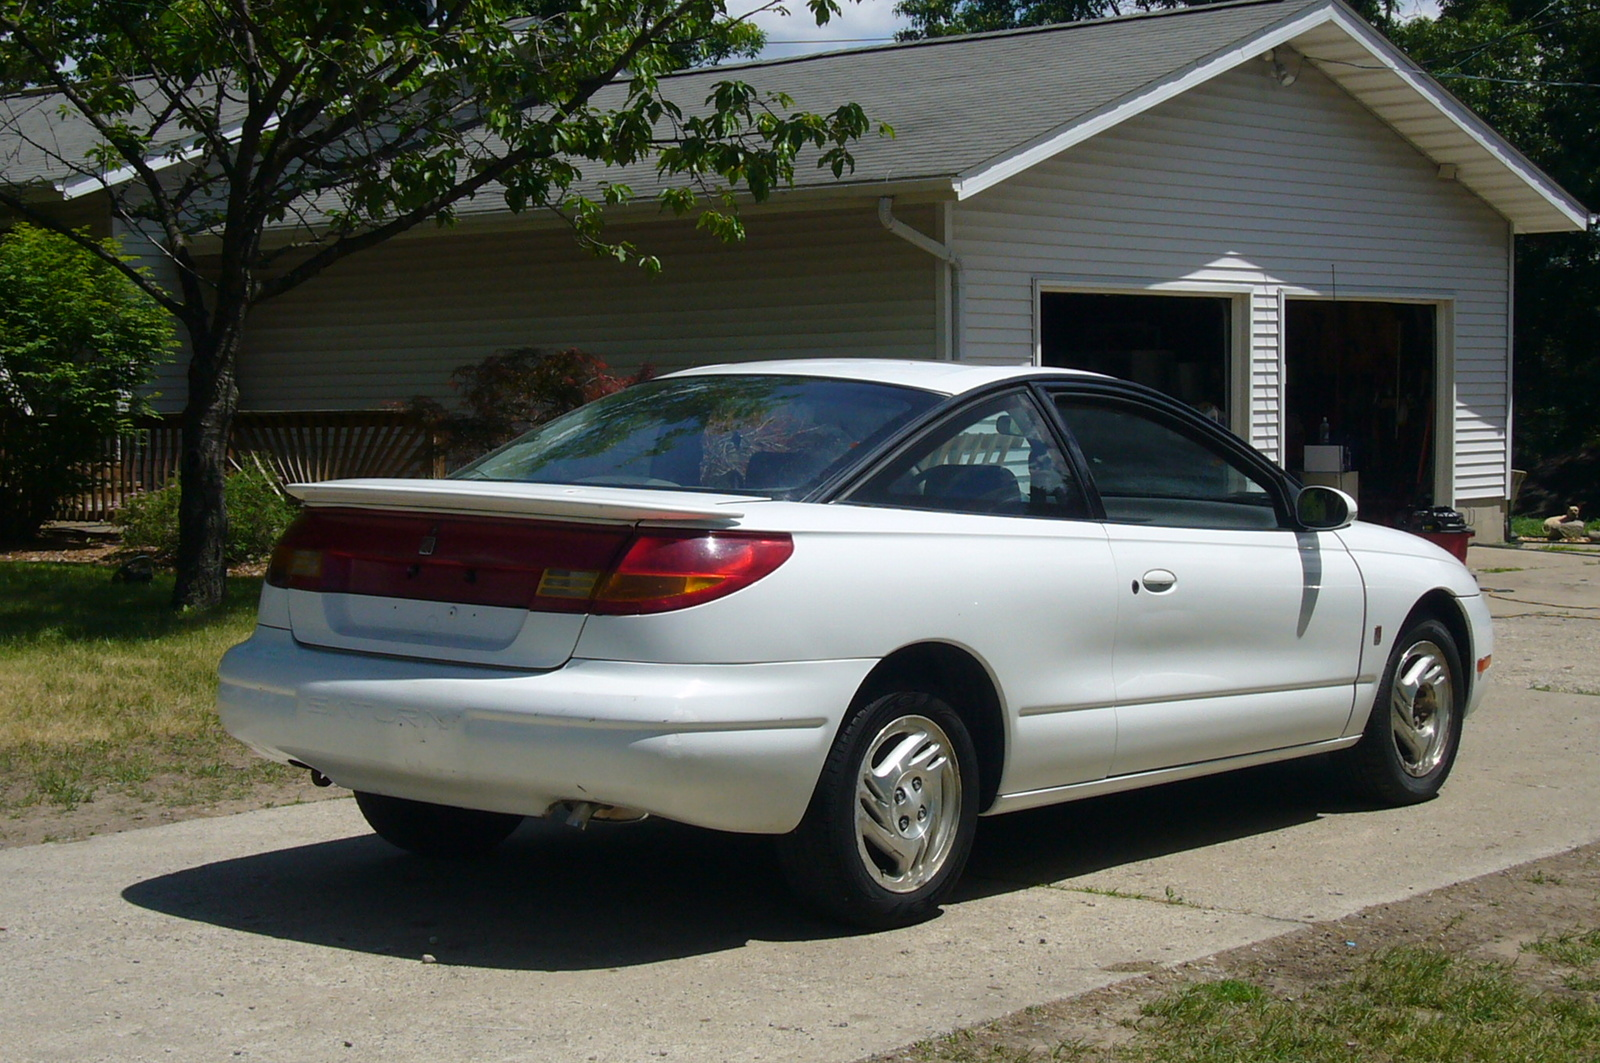 Saturn S Series likewise Saturn Vue V Pic X furthermore Saturn Logo also Hqdefault in addition To Saturn Lw Rear Passenger Side View. on saturn l series